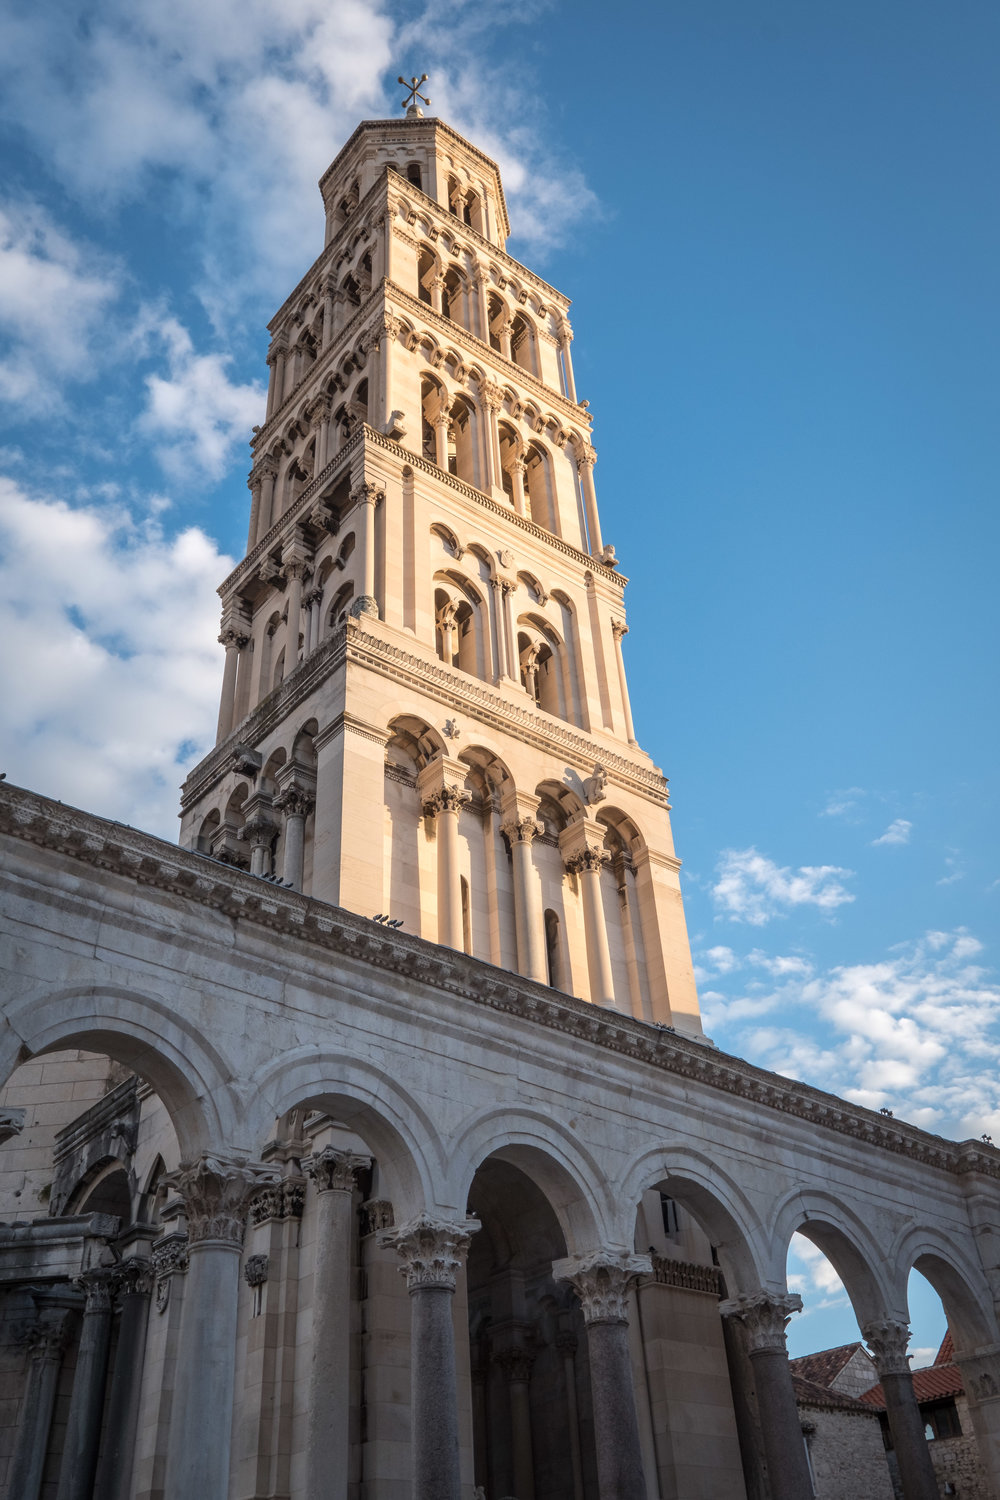 Cathedral of Saint Domnius' bell tower in Split, Croatia